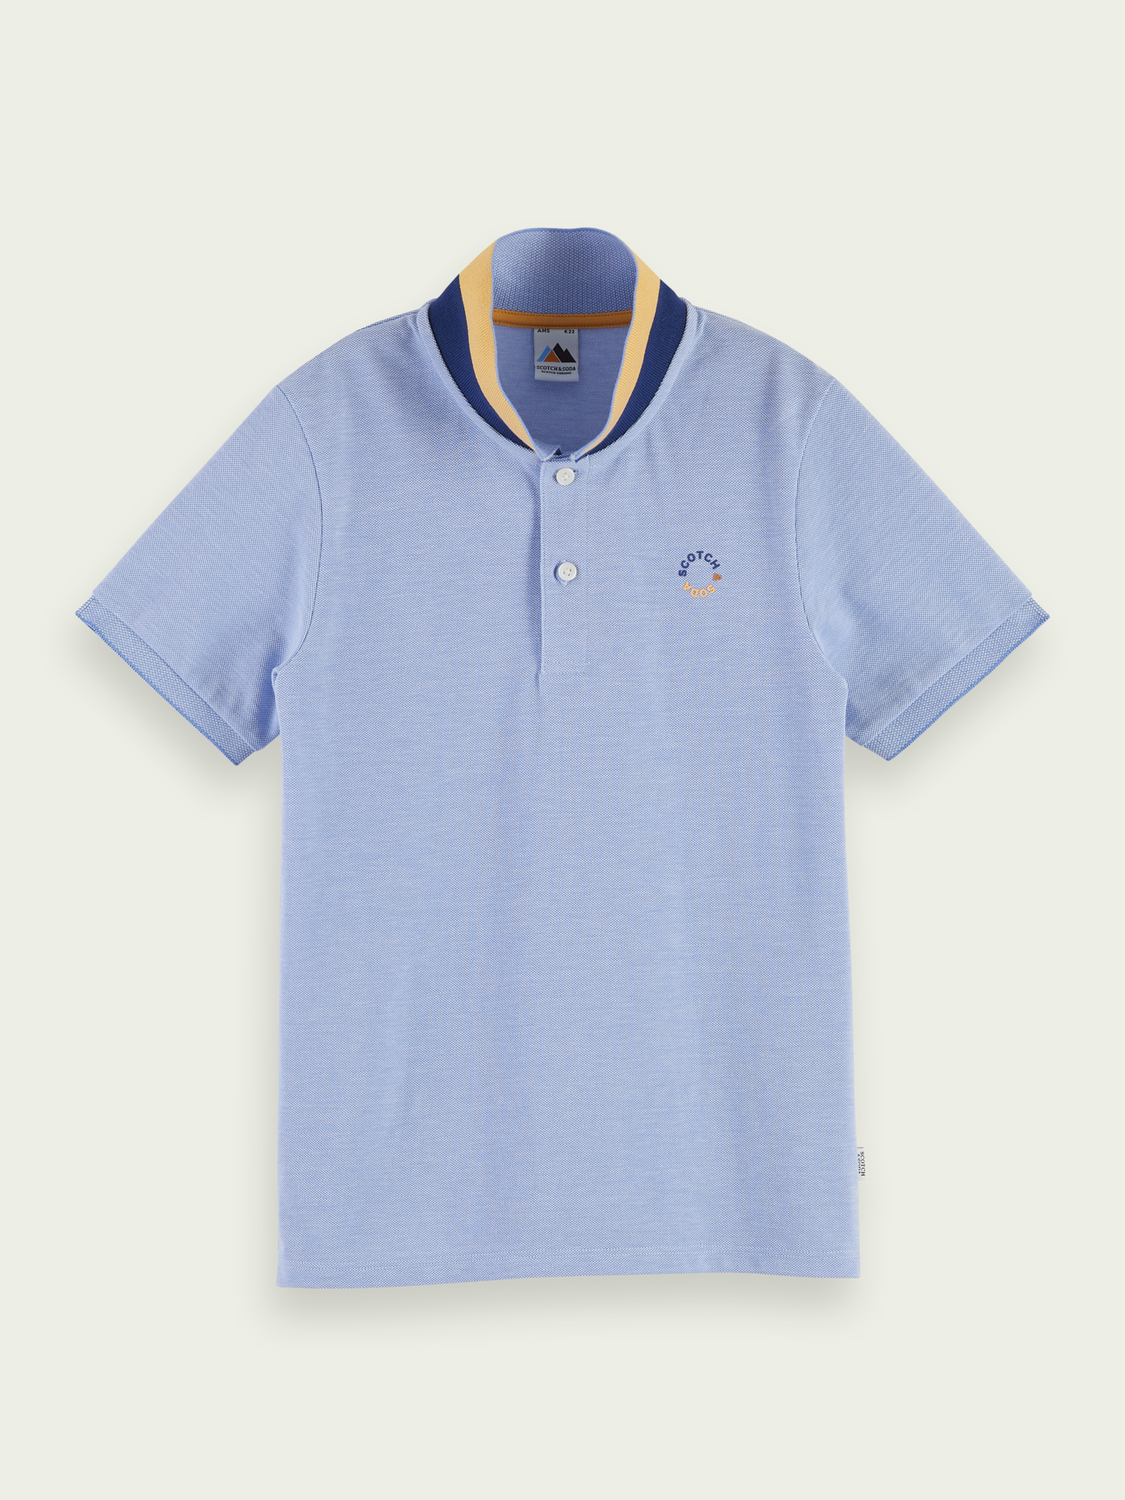 Kids Cotton short sleeve polo shirt